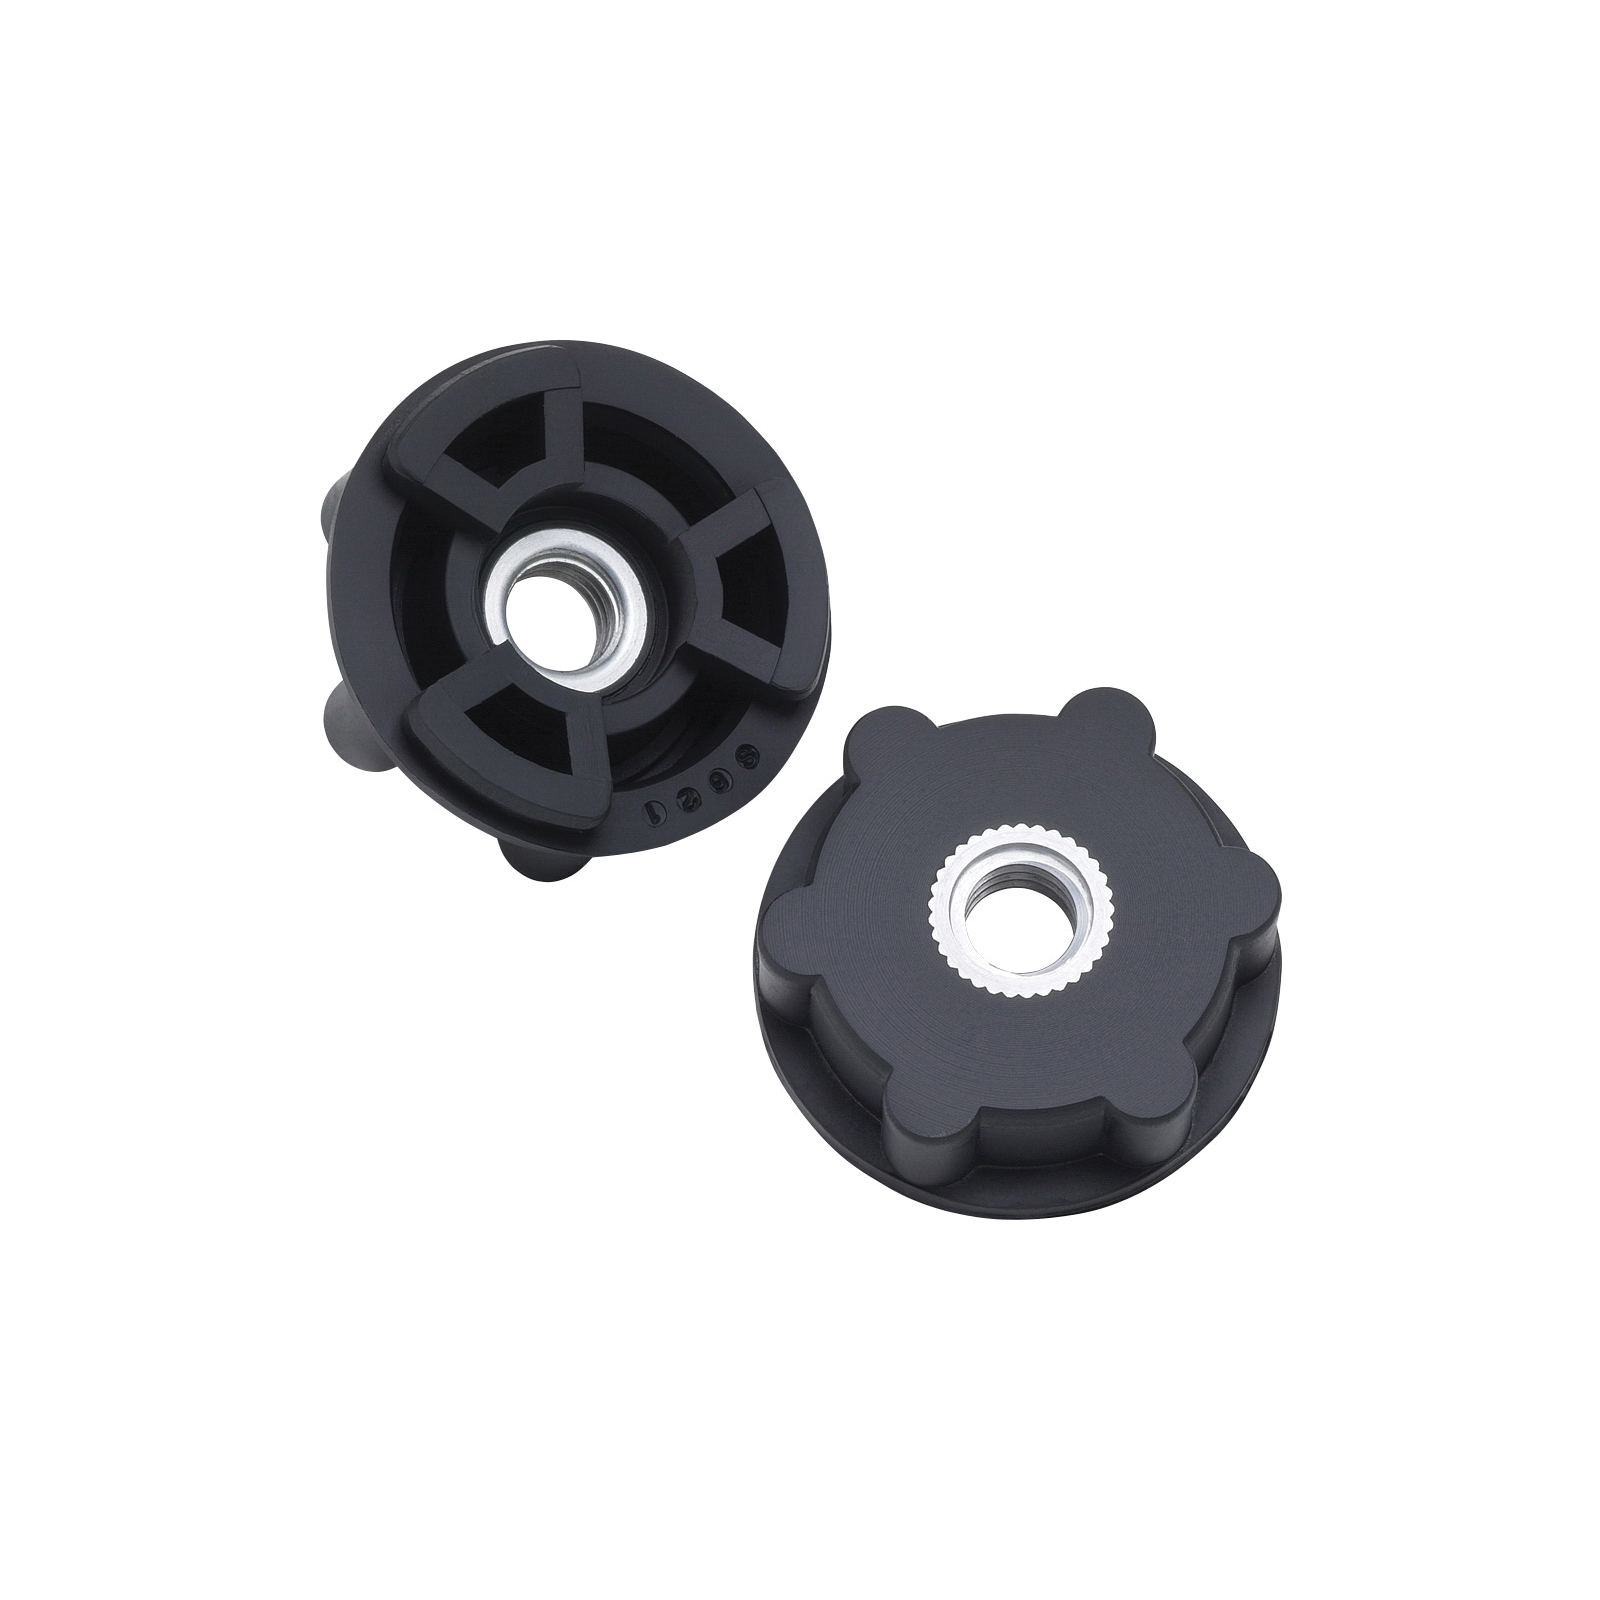 3M™ 051144-45205 Retainer Nut Disc Pad Hub, 2-1/2 in, For Use With 4 to 9 in Face Plate